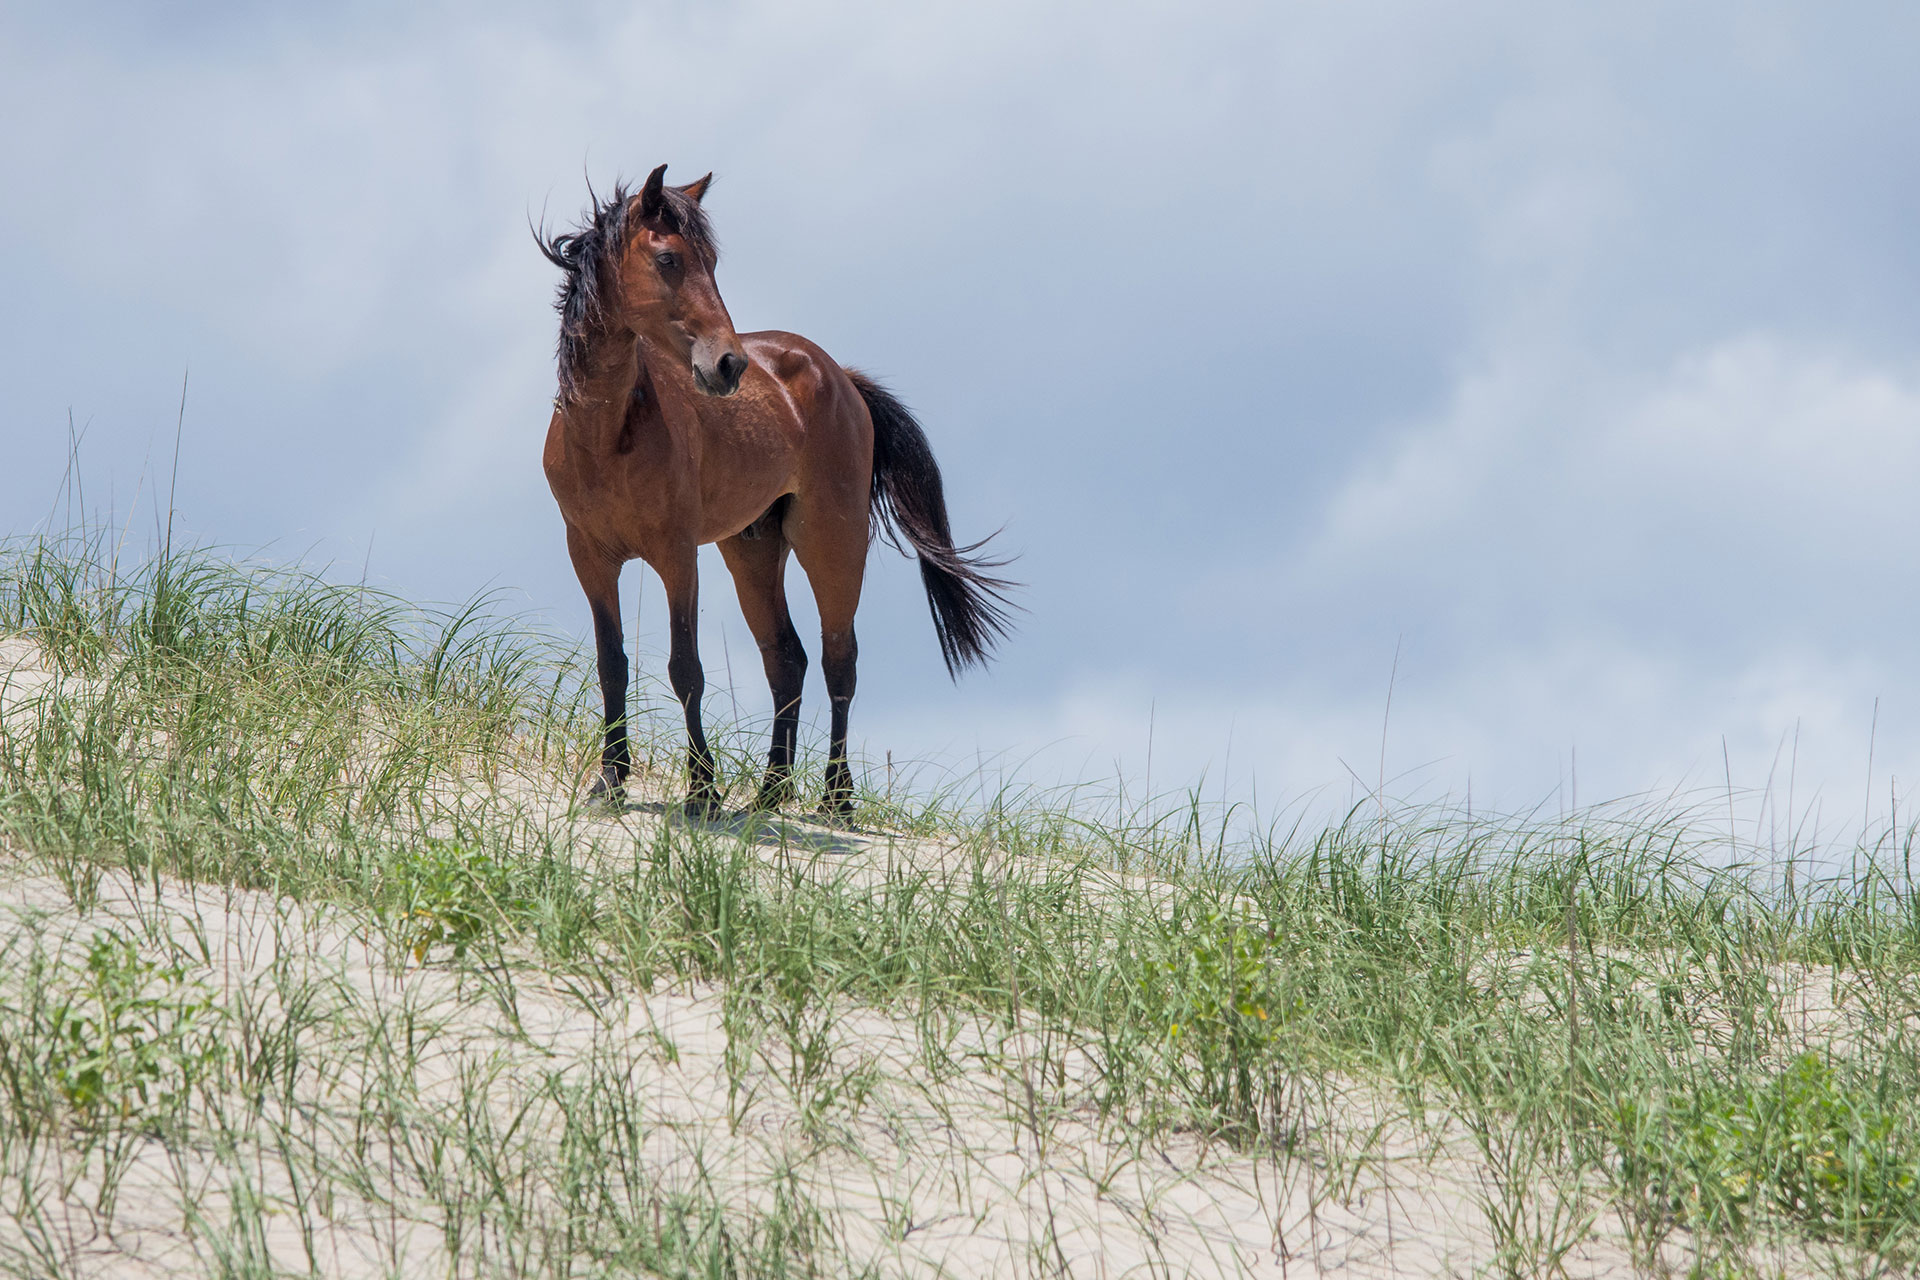 Wild Horse in Outer Banks, North Carolina; Courtesy of BHamm/Shutterstock.com